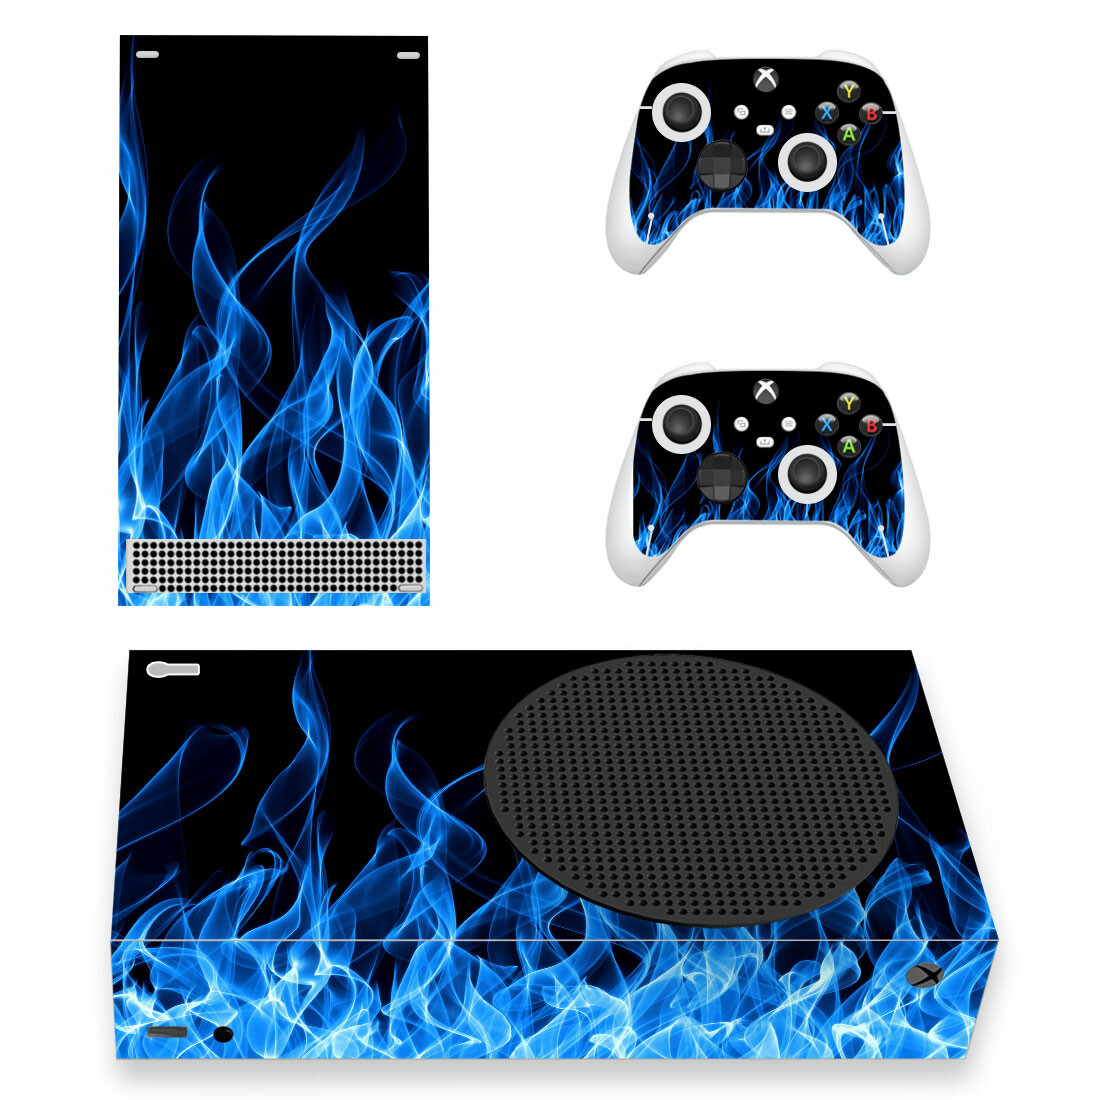 Blue Fire Wallpapers Skin Sticker For Xbox Series S And Controllers